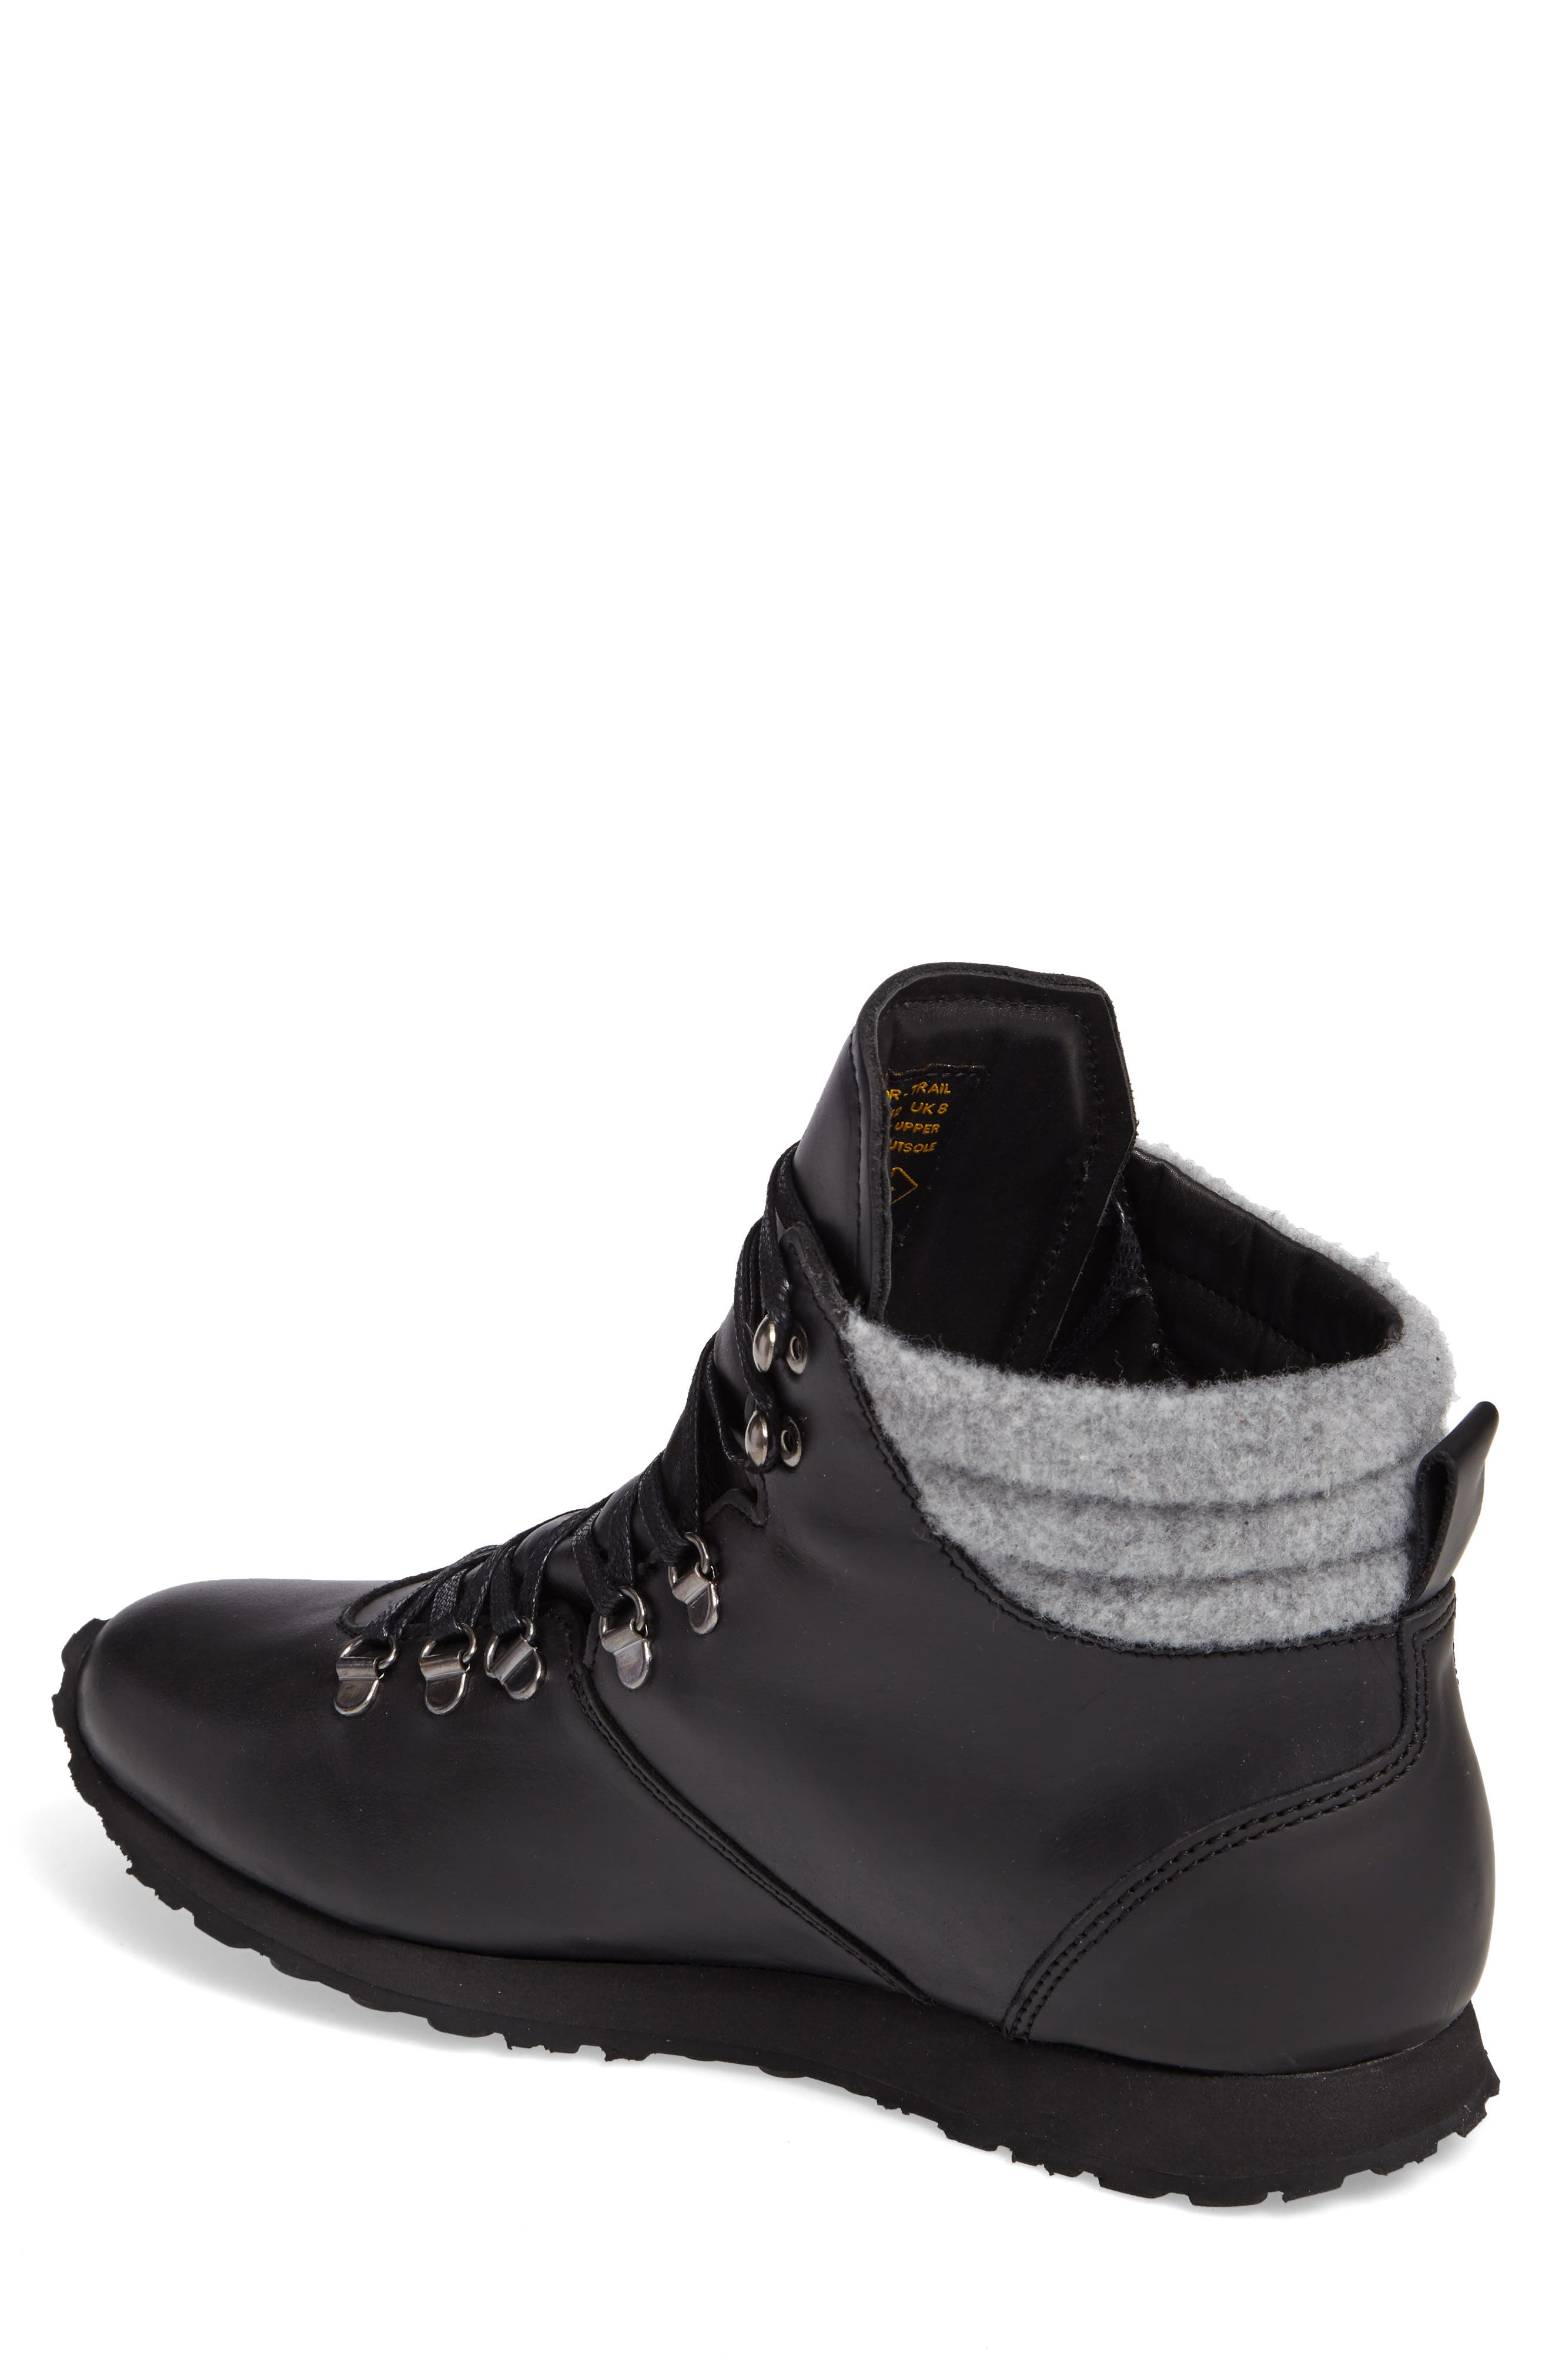 Concord Mid Top Wool Cuffed Waterproof Boot,                             Alternate thumbnail 2, color,                             001